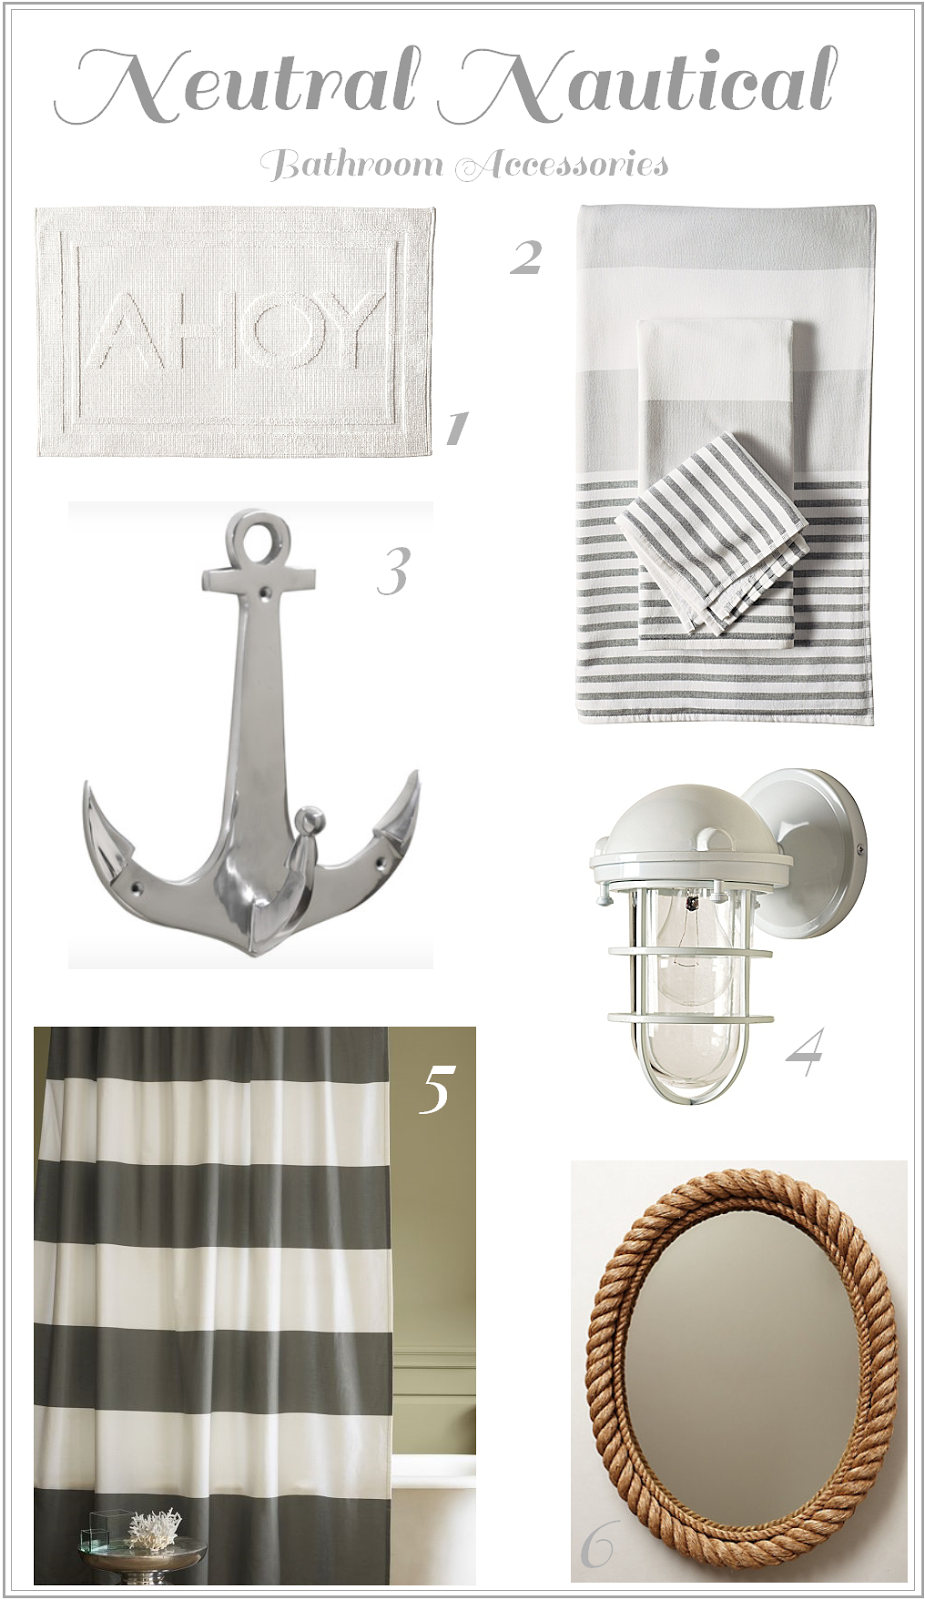 Neutral Nautical Bathroom Accessories | Nautical | Pinterest ...